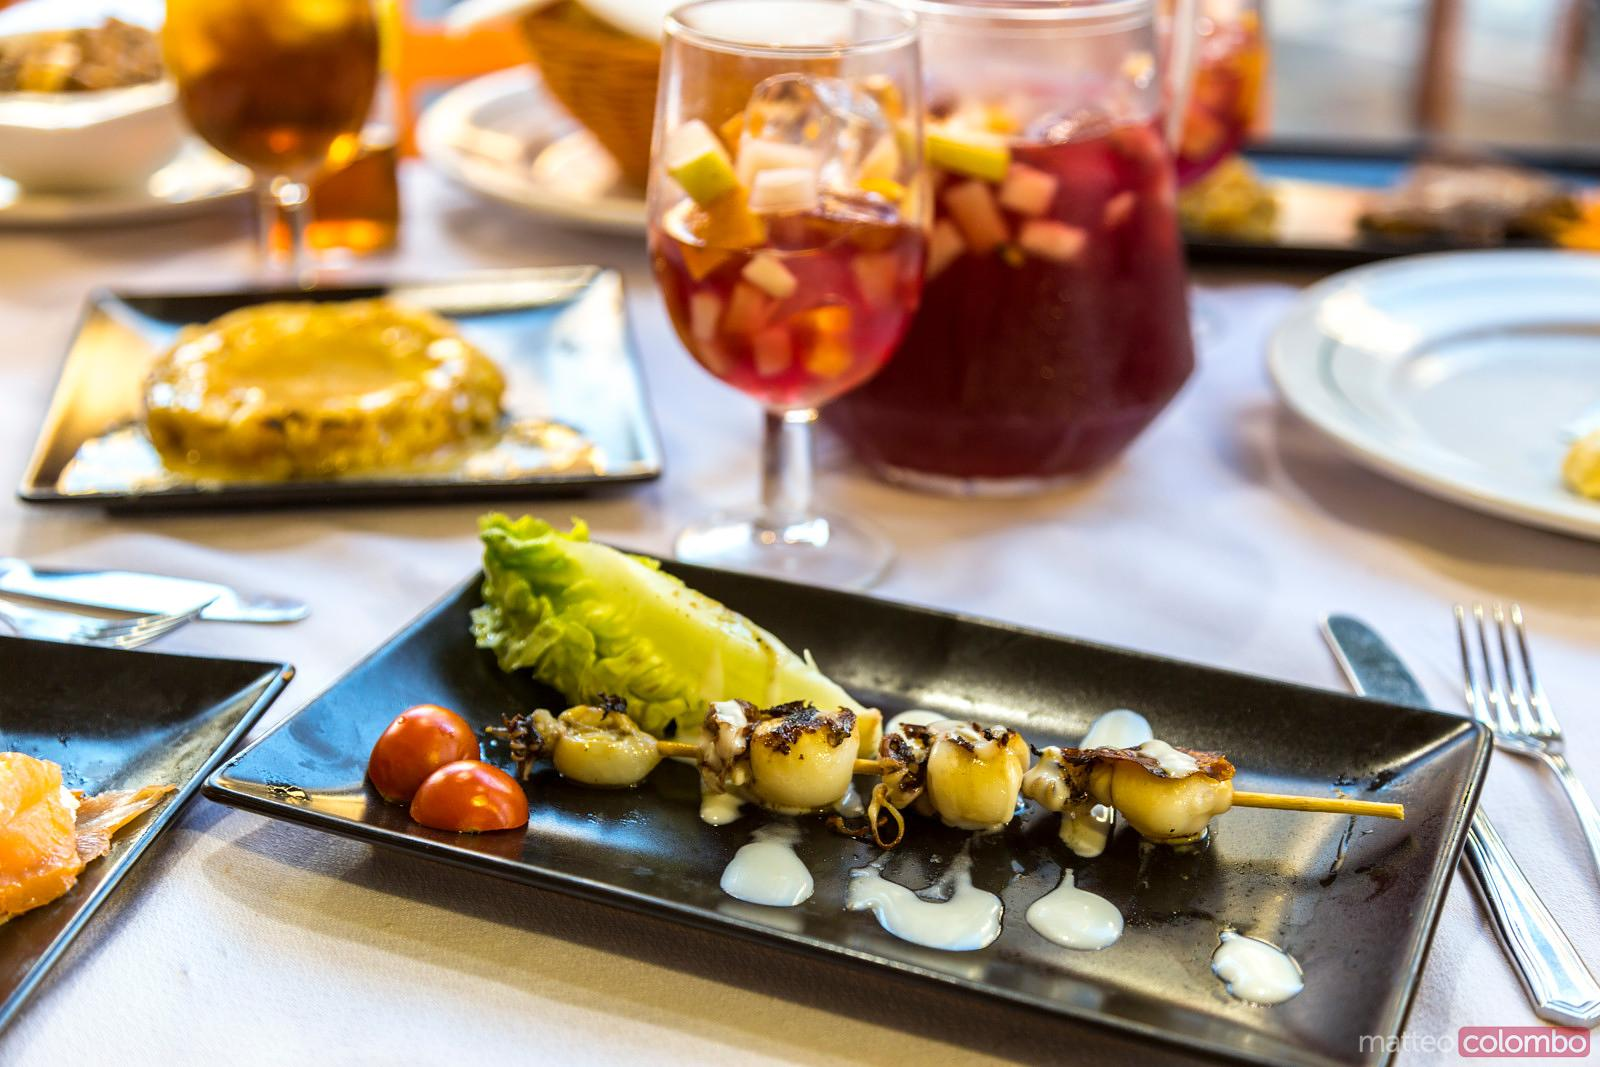 Sangria and tapas, Seville, Andalusia, Spain